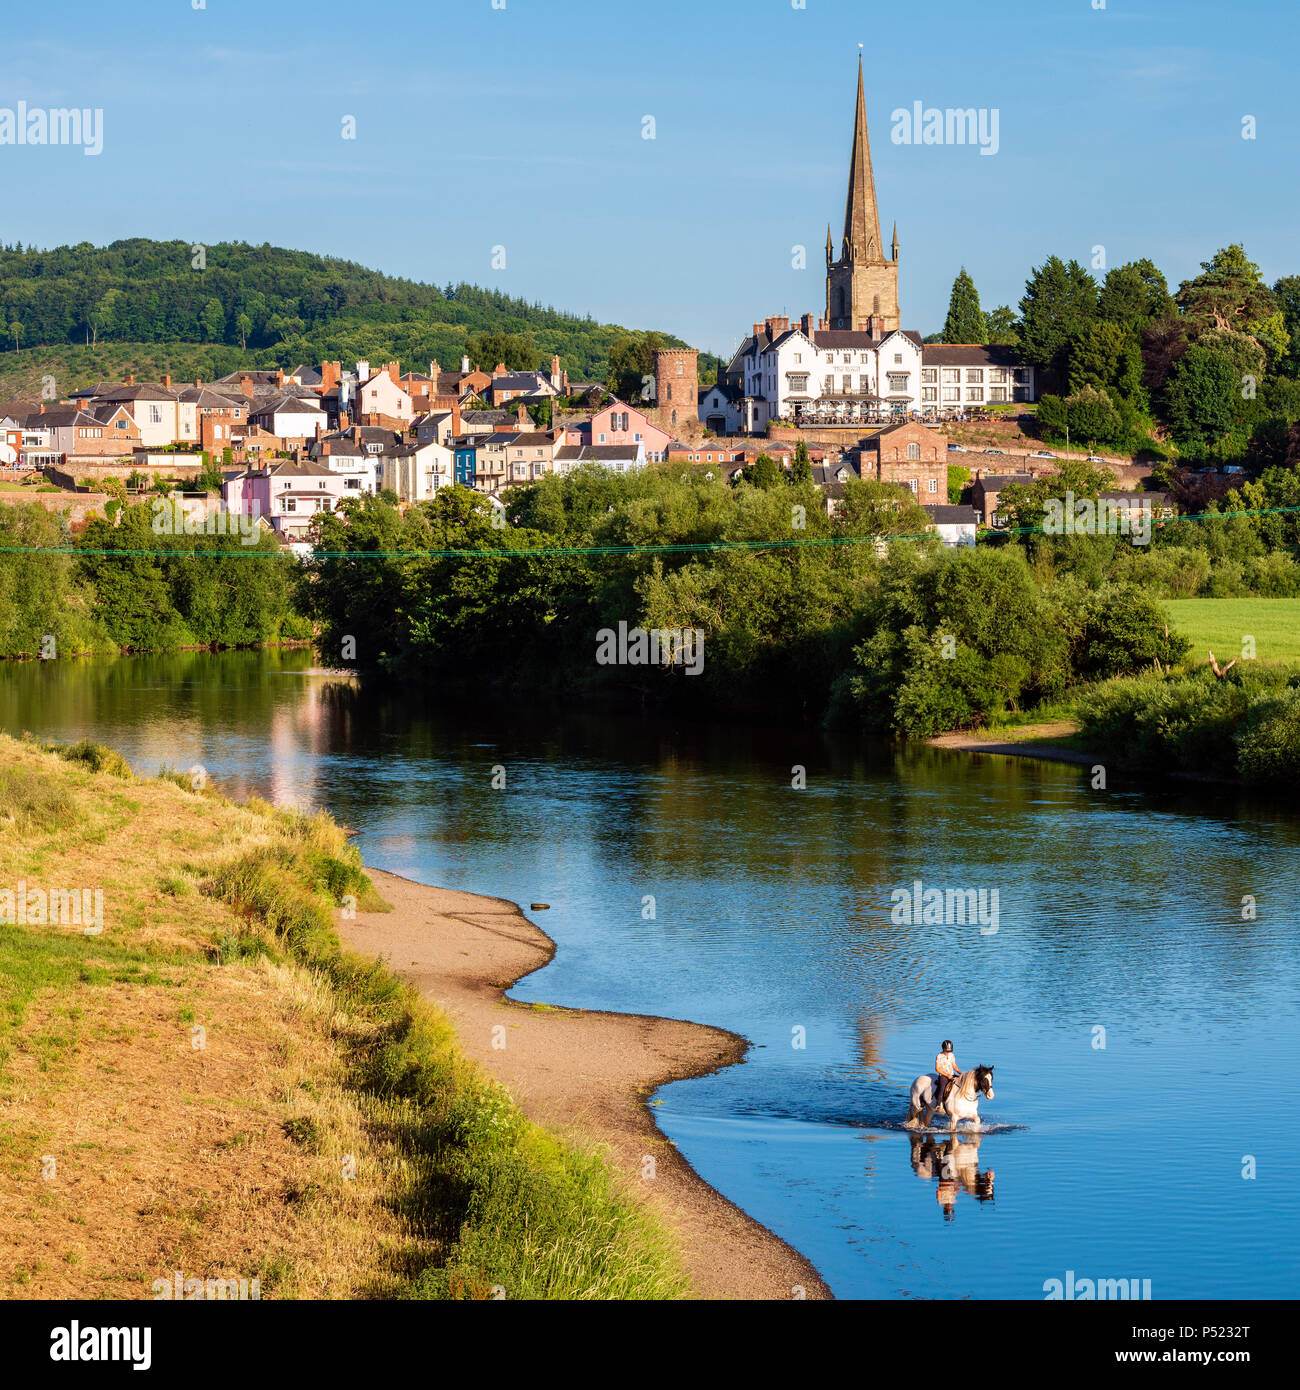 Ross on Wye, Herefordshire, UK. Photographed on a summer evening. Horse & rider cooling off in the river. - Stock Image